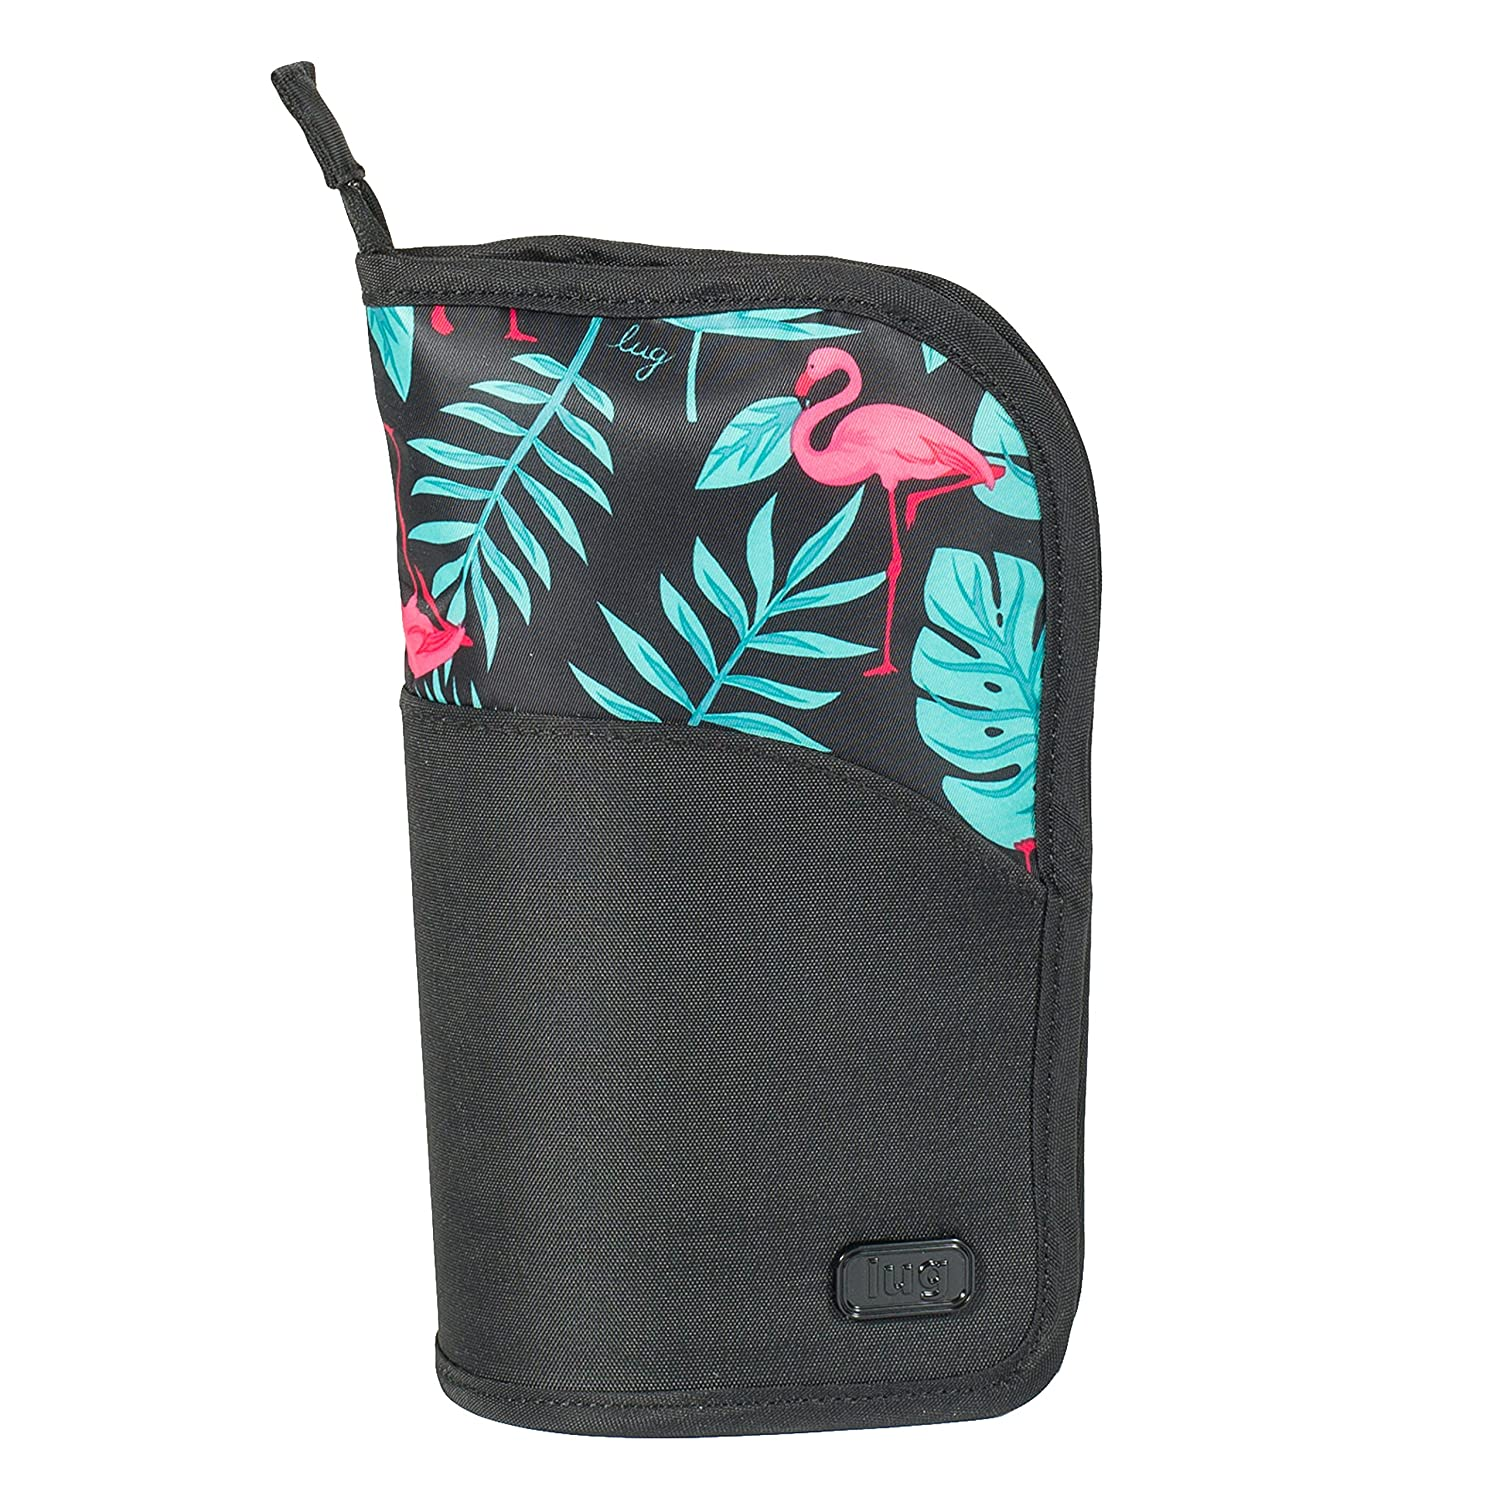 Lug Canoe Cosmetic Case Flamingo Black